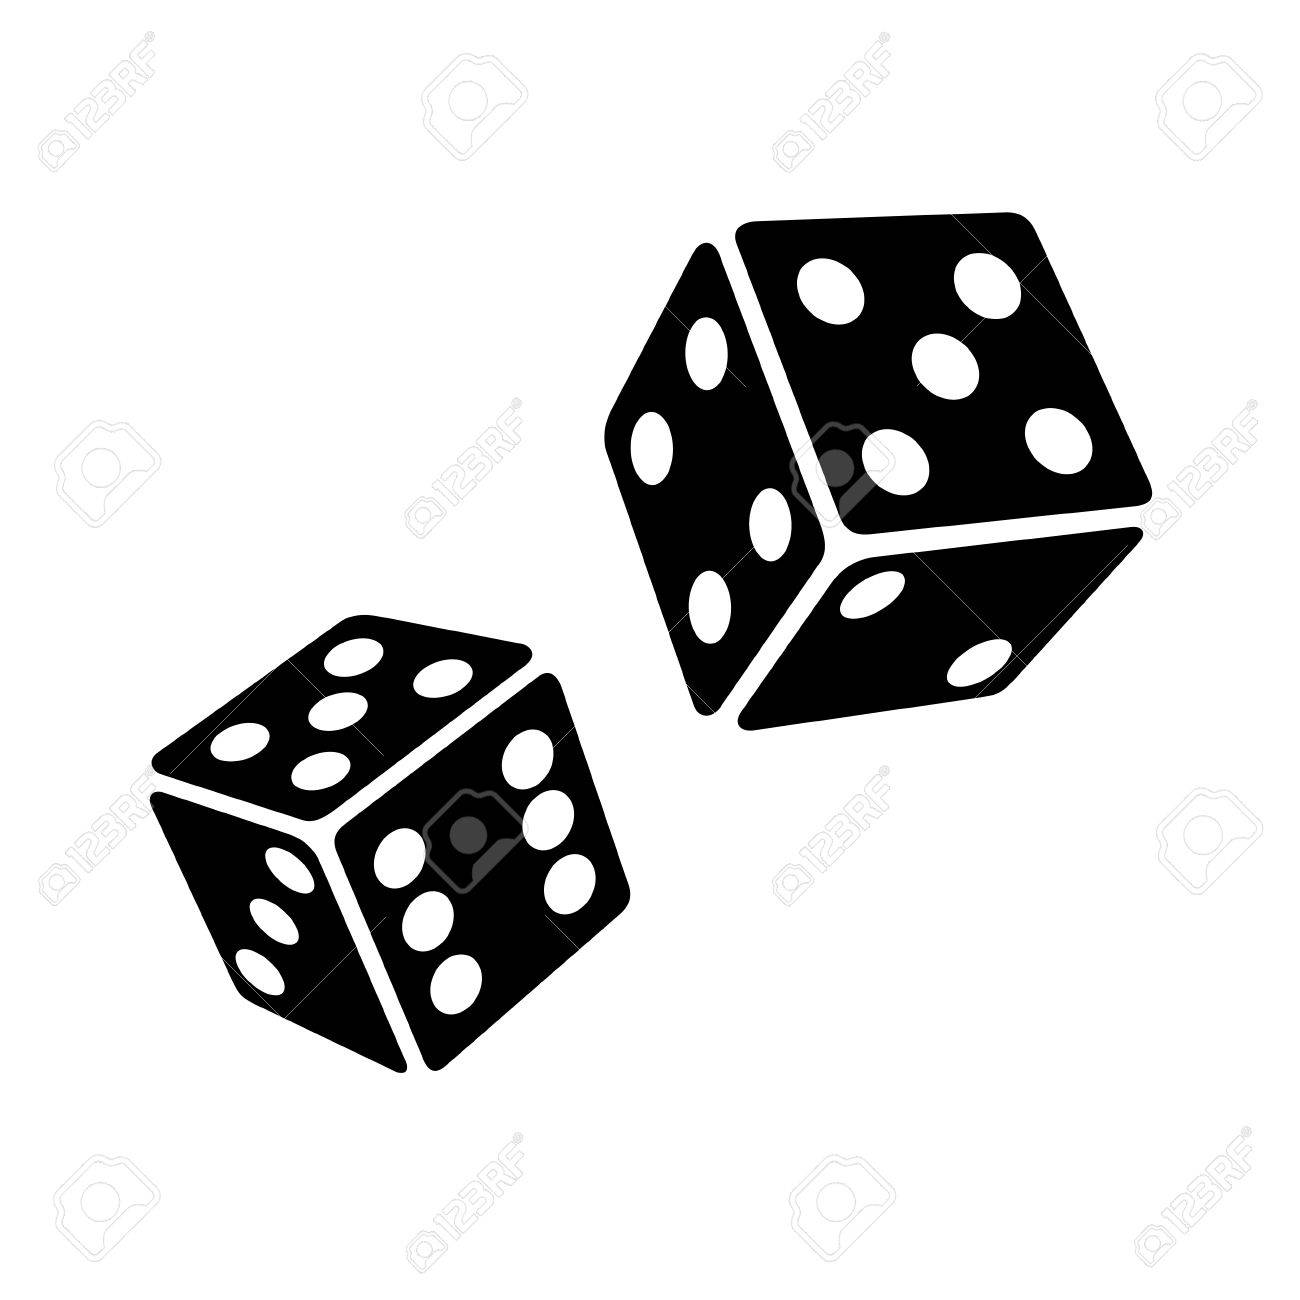 1300x1300 Two Black Dice Cubes On White Background. Vector Illustrations